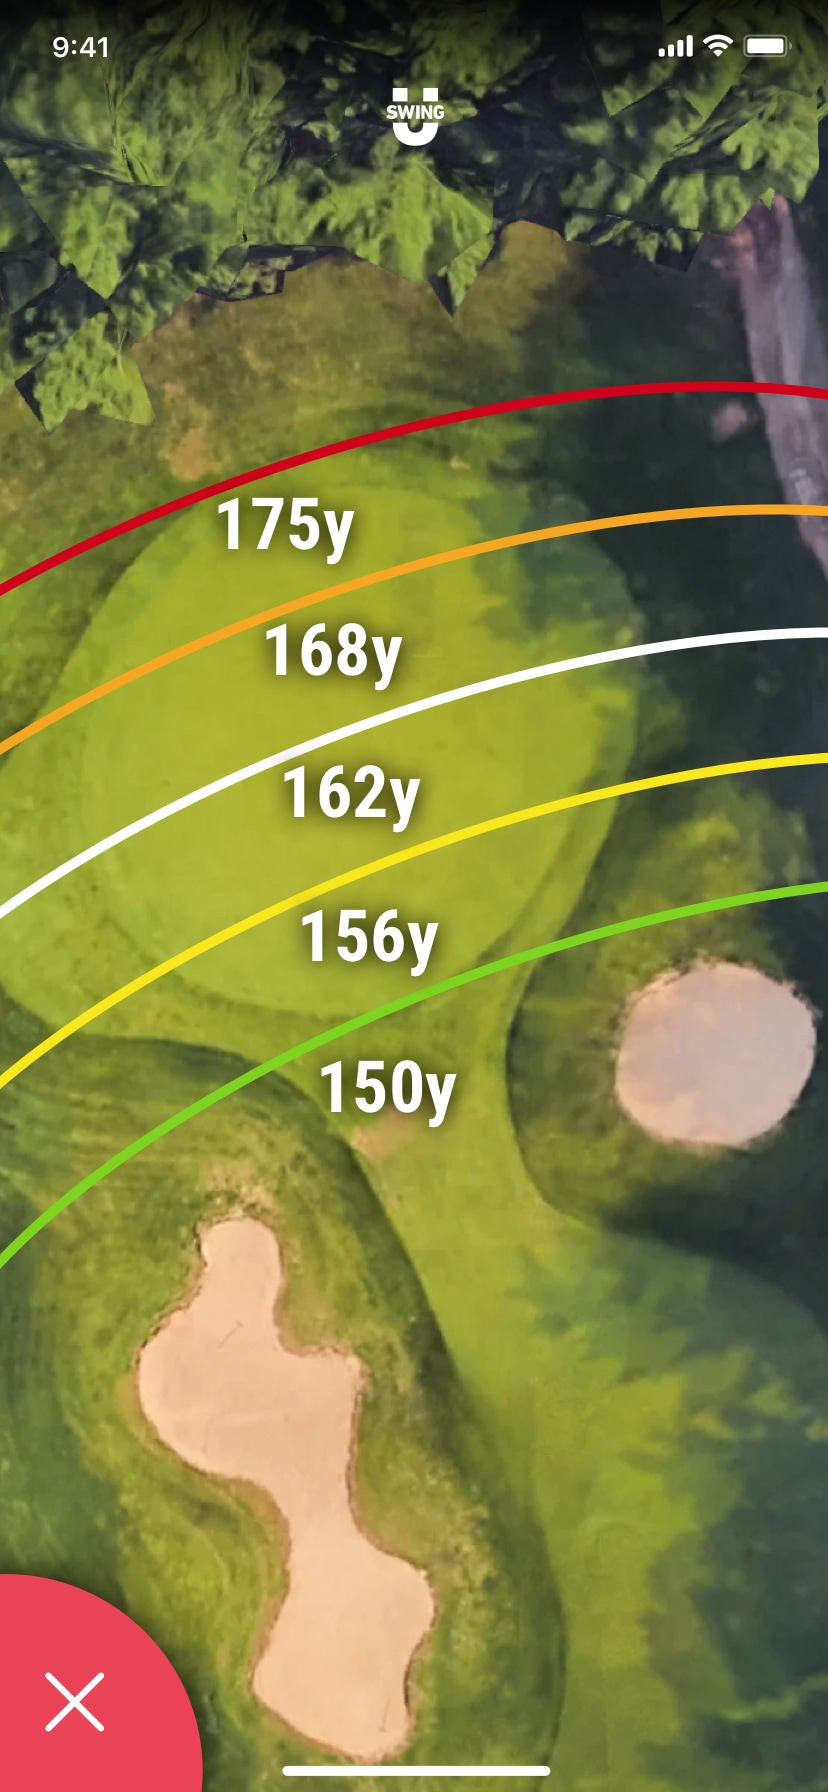 SwingU - Screenshot - SwingU Golf GPS Zoom-In Green Distances